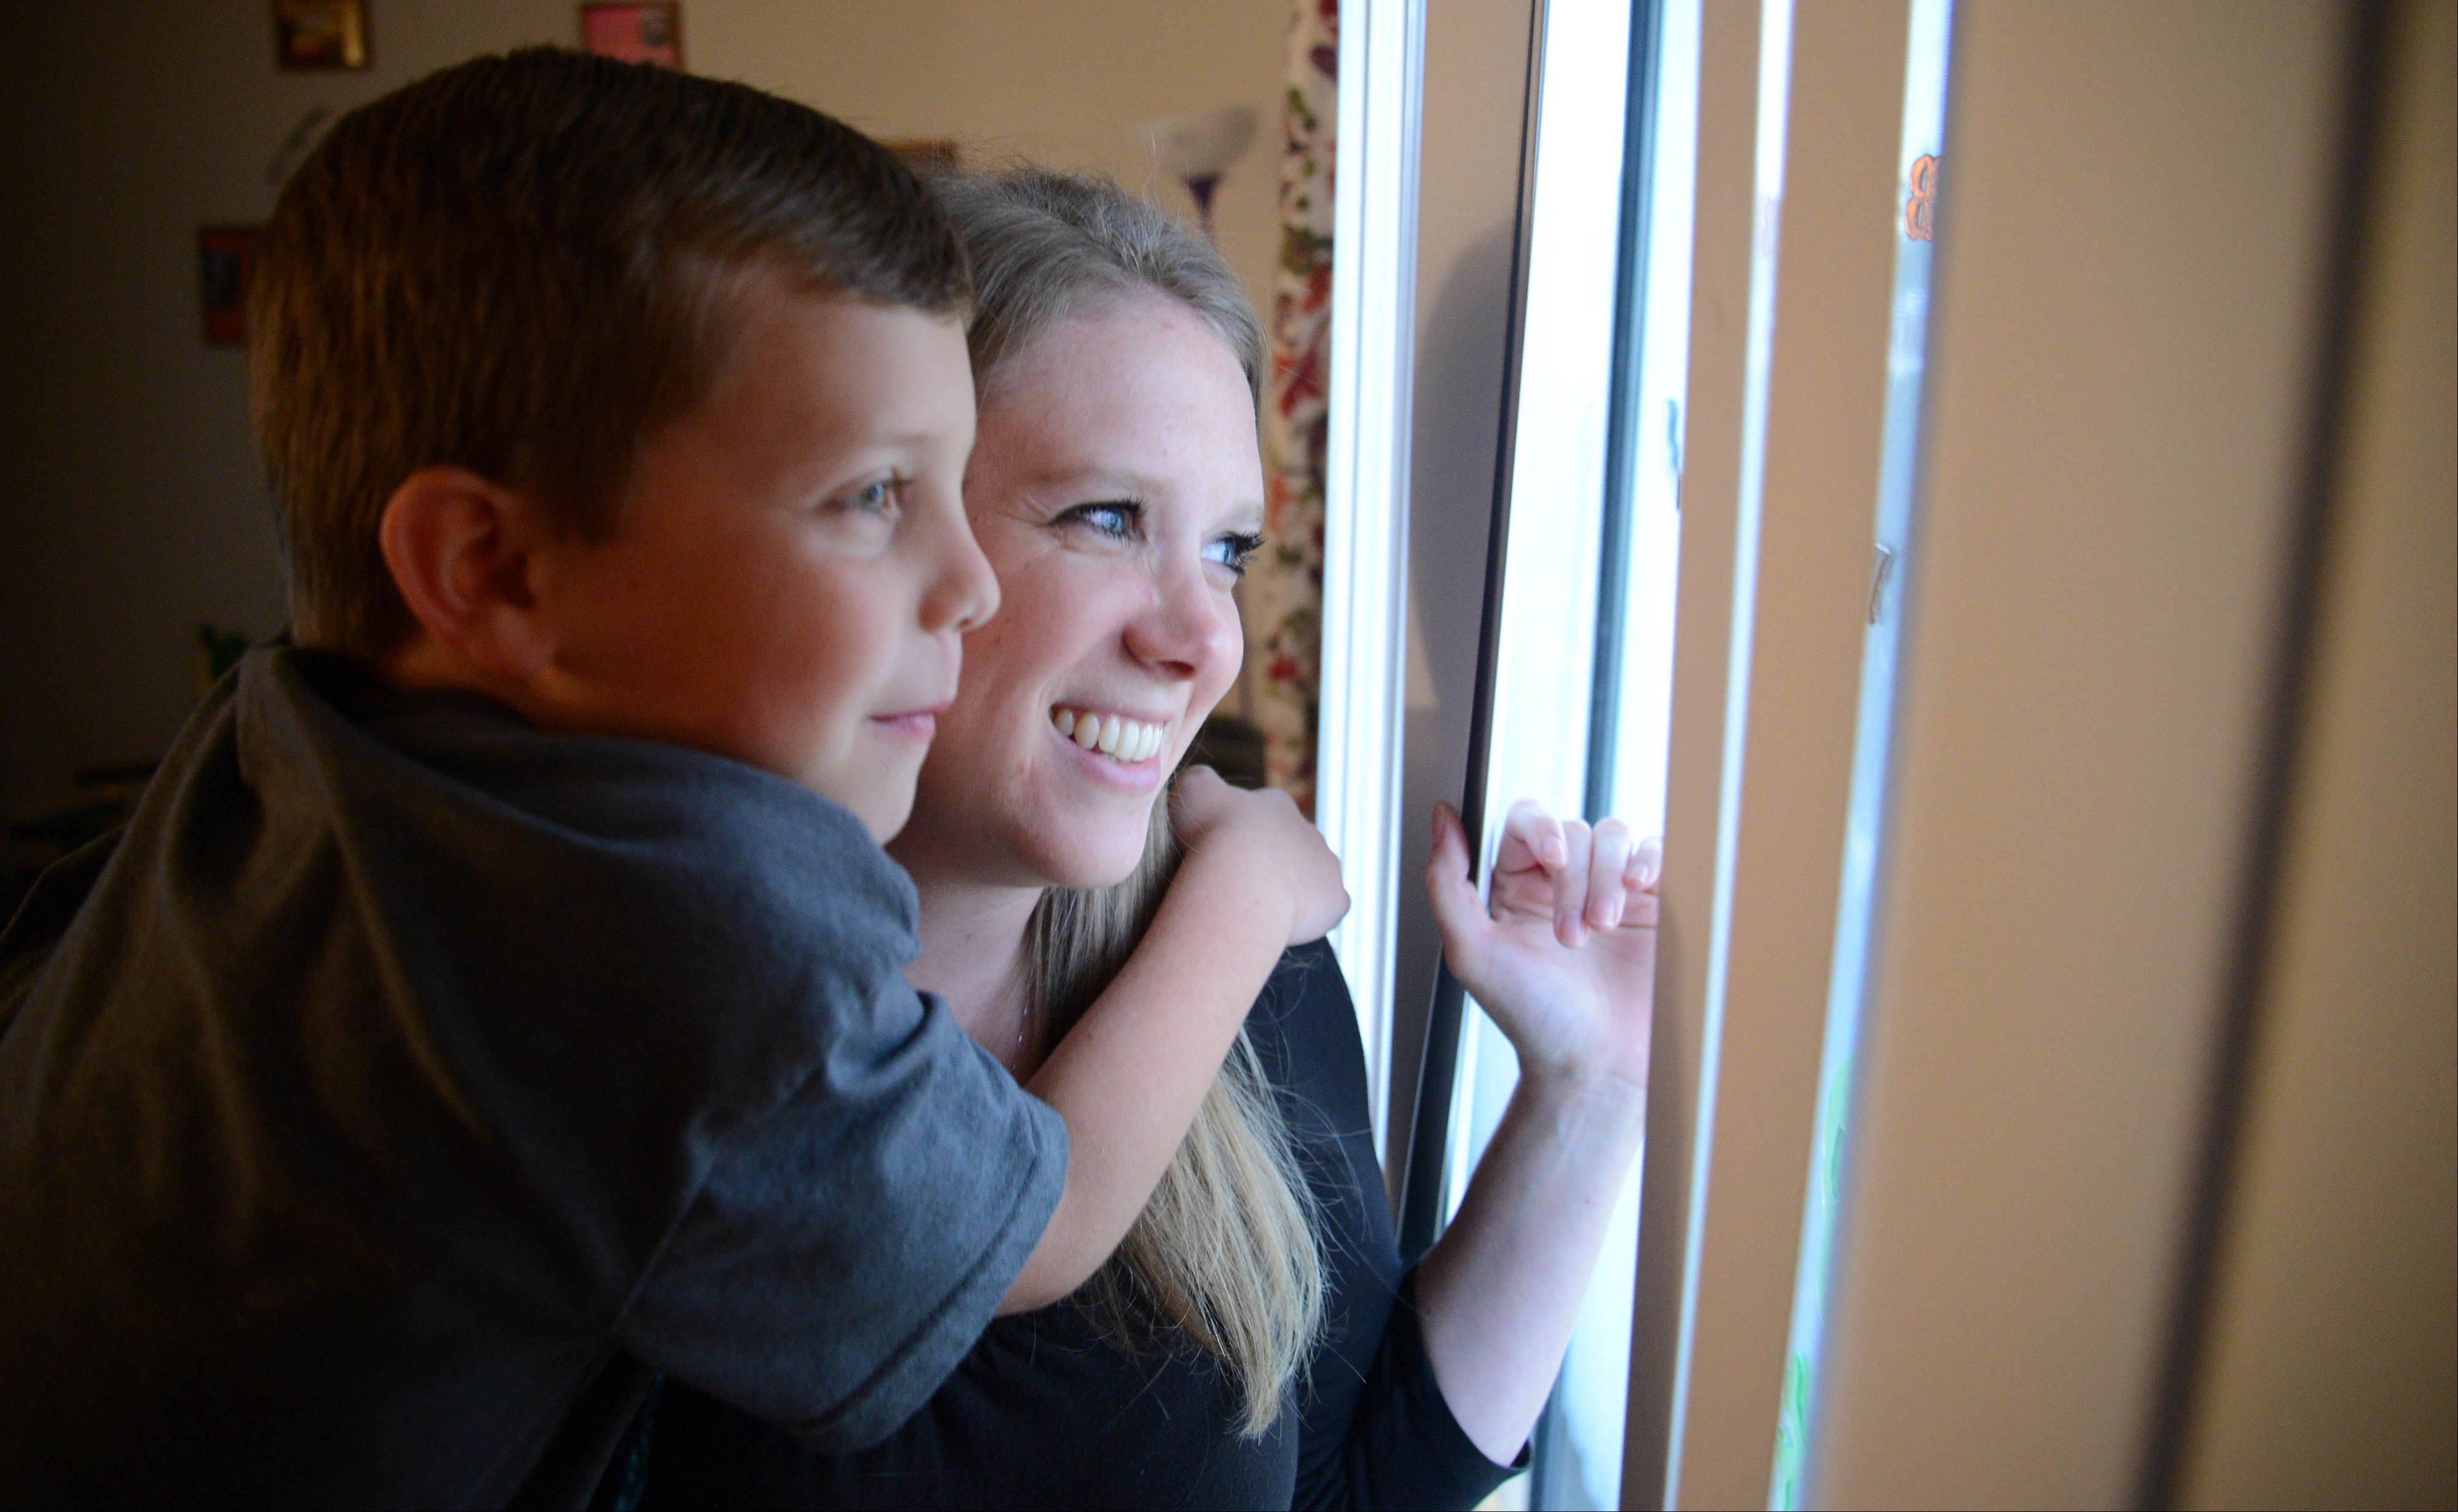 Alecia Hannemann and her son, Aidan, were abandoned by the child's father nearly three years ago. But thanks to help she received from Bridge Communities, she's been able to get an apartment and become financially independent.